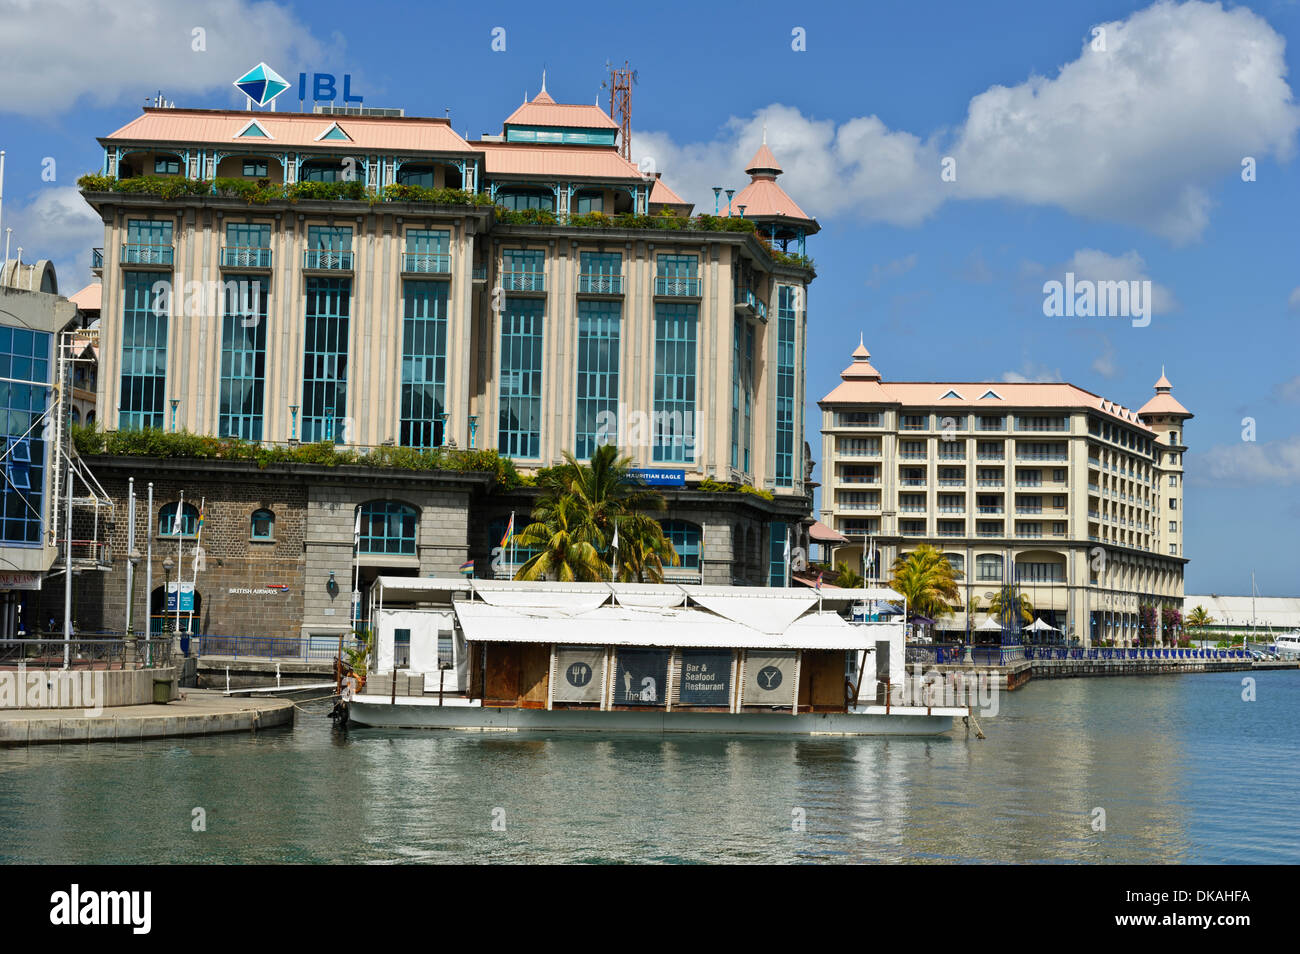 Caudan waterfront with restaurants bars the ibl building and stock photo 63542846 alamy - Restaurants in port louis mauritius ...